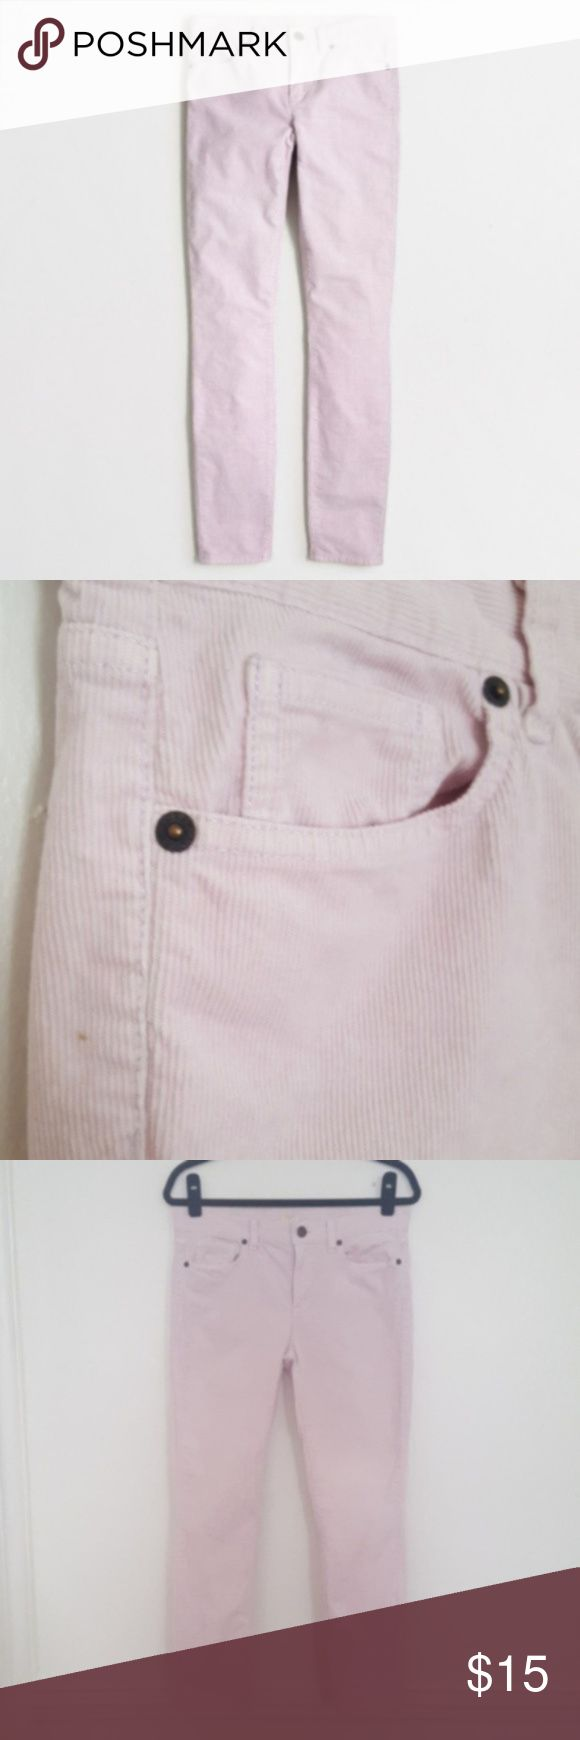 """J. Crew Factory Blush Lilac Skinny Ankle Cords J. Crew Factory skinny ankle mid rise cords in a color between blush pink and lilac. Rise is 9"""" and inseam is 27"""". 99% cotton, 1% elastacene. Corduroys have a small light mark on the back of the left knee, and one small mark on the left hip (see close-ups). Size 28. J. Crew Pants Ankle & Cropped"""